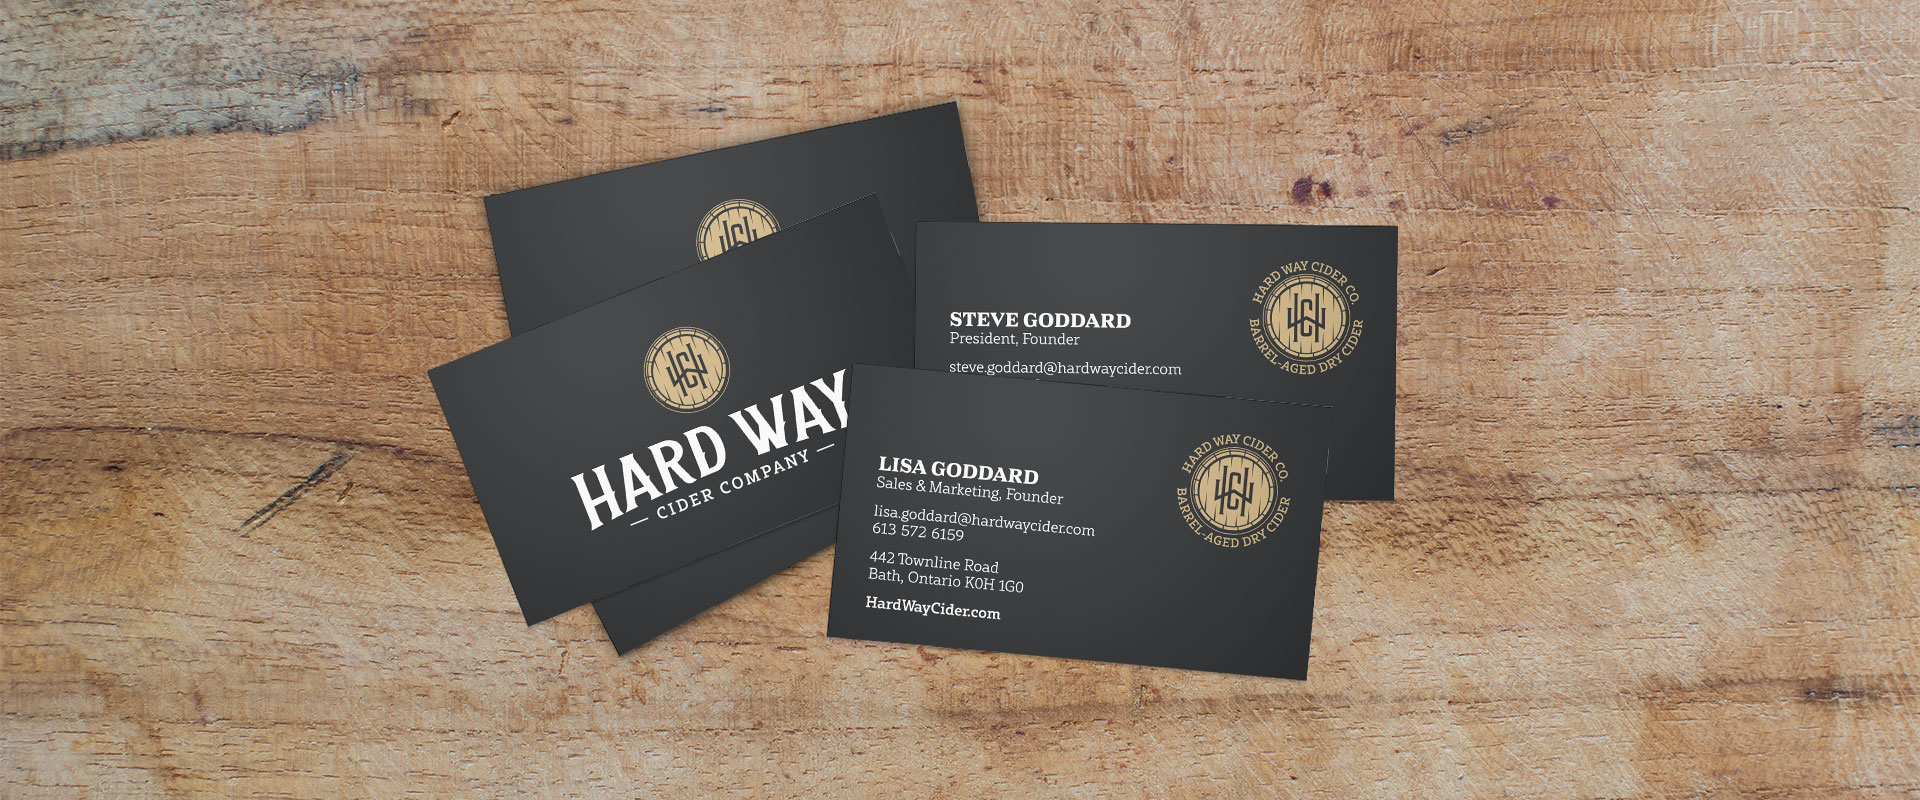 hwc-business-cards